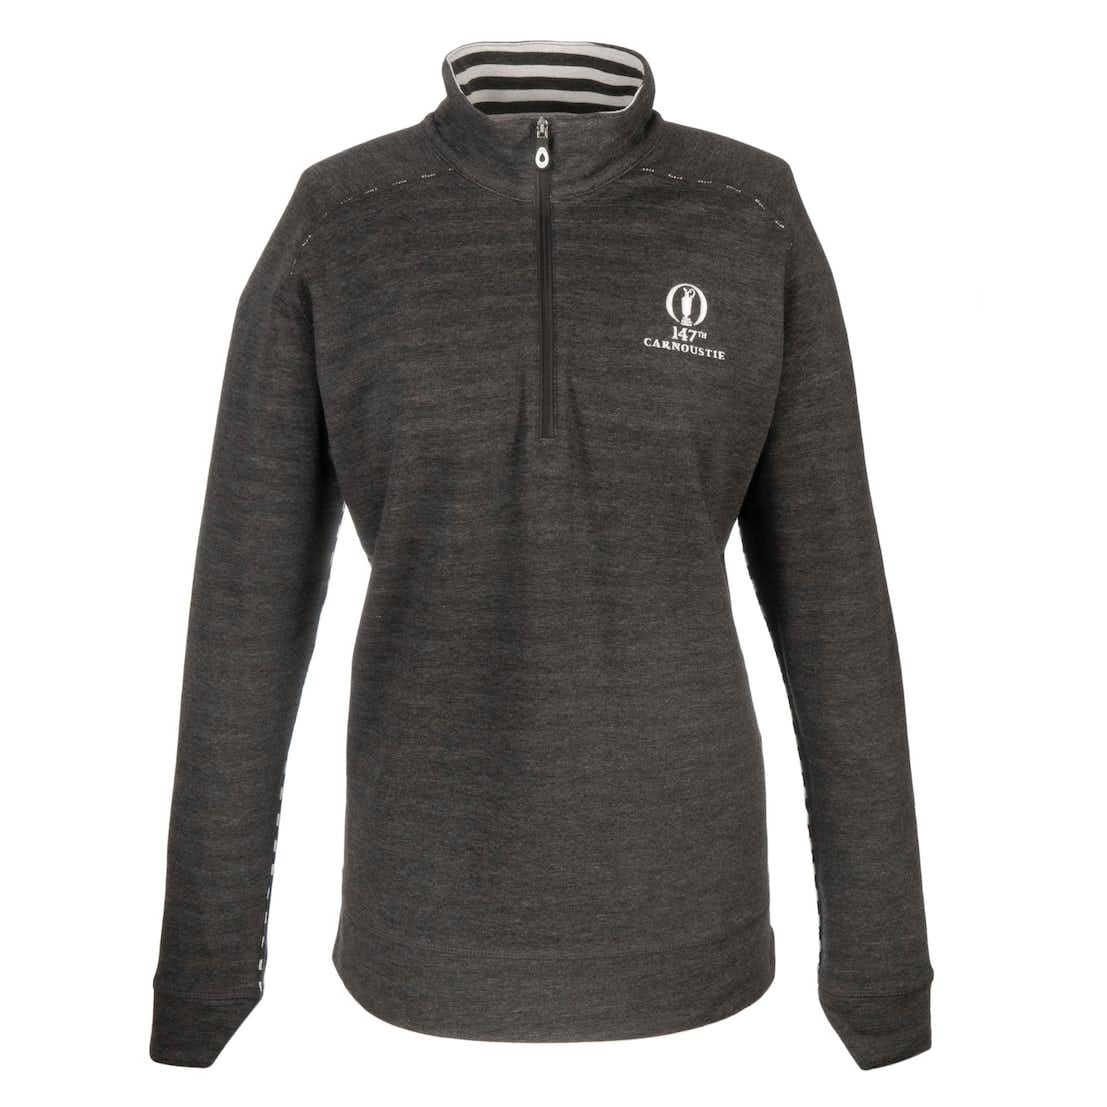 147th Carnoustie Kate Lord 1/2-Zip Pullover - Black